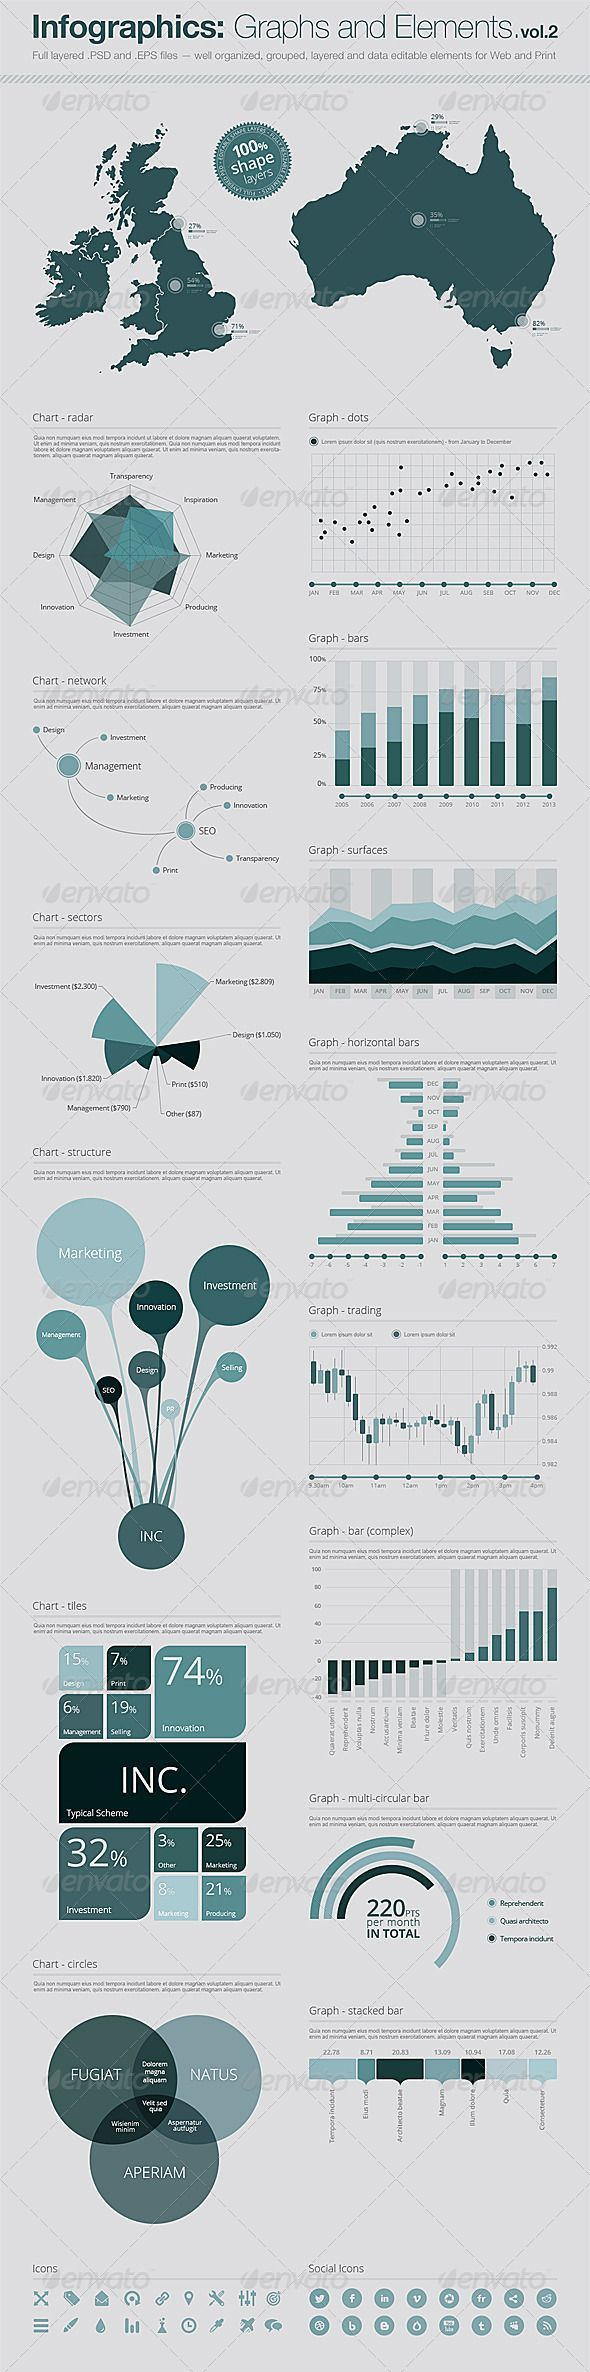 Infographics: Vector Graphs and Elements Vol.2 Everything is resizable! You can easily modify shapes and change colors as you like. It suits to website designs and printed materials with high resolution too. http://startupstacks.com... - free download #infographics